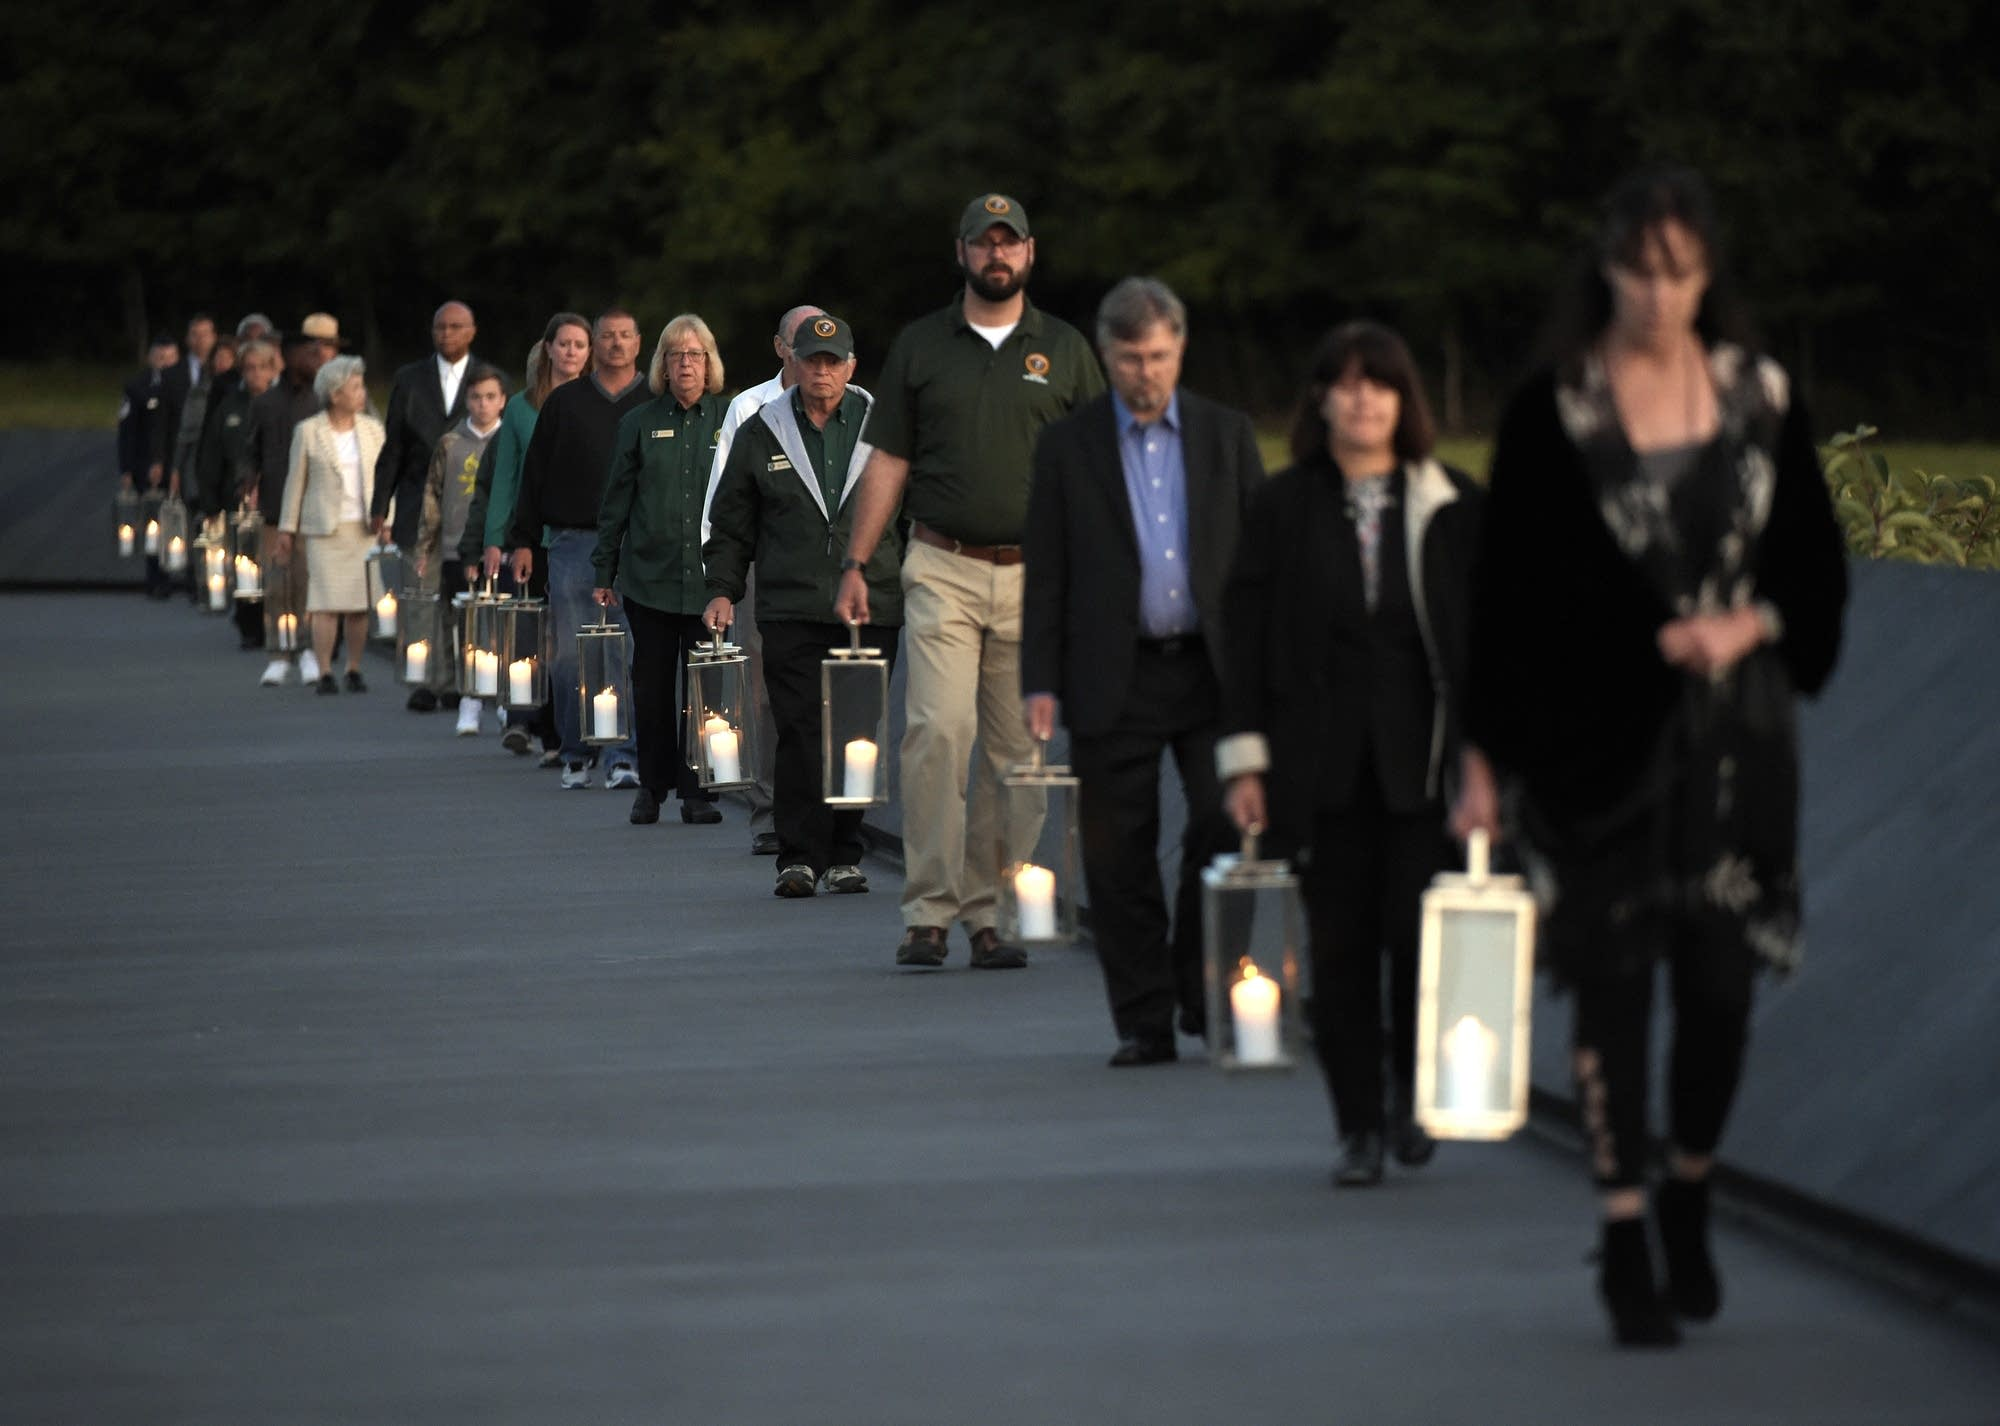 Candles in memory of the passengers and crew of United Flight 93.